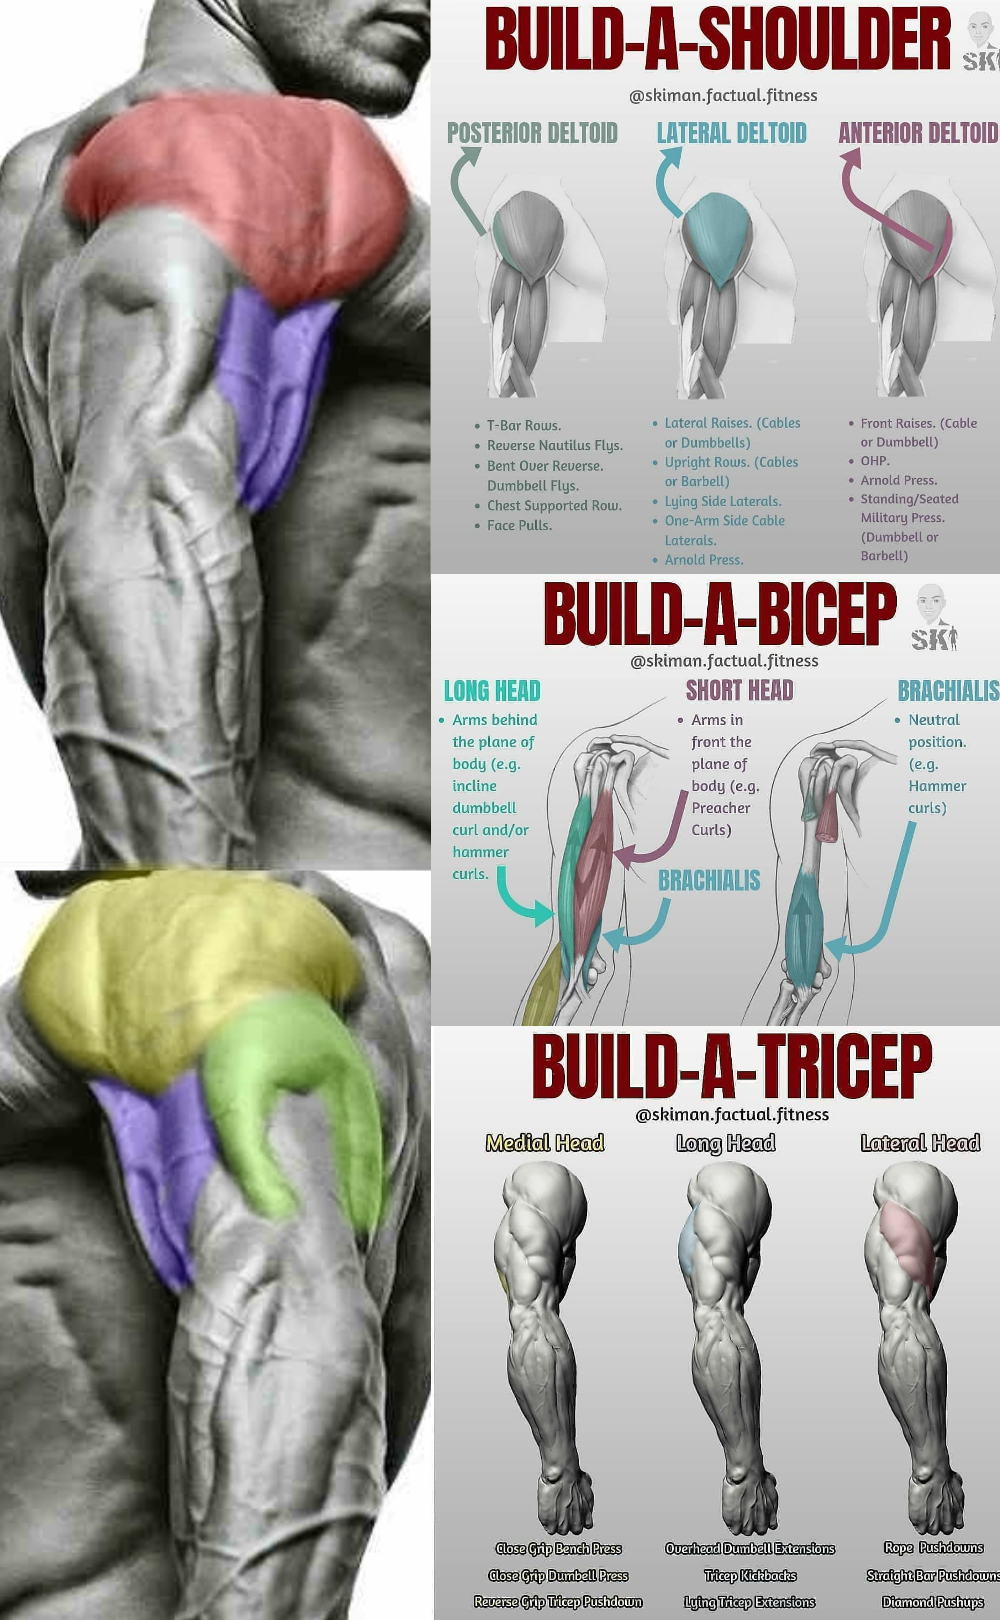 The Best Bulging Bigger Biceps Workout To Grow Your Arms Gymguider Com Big Biceps Workout Biceps Workout Shoulder Workout